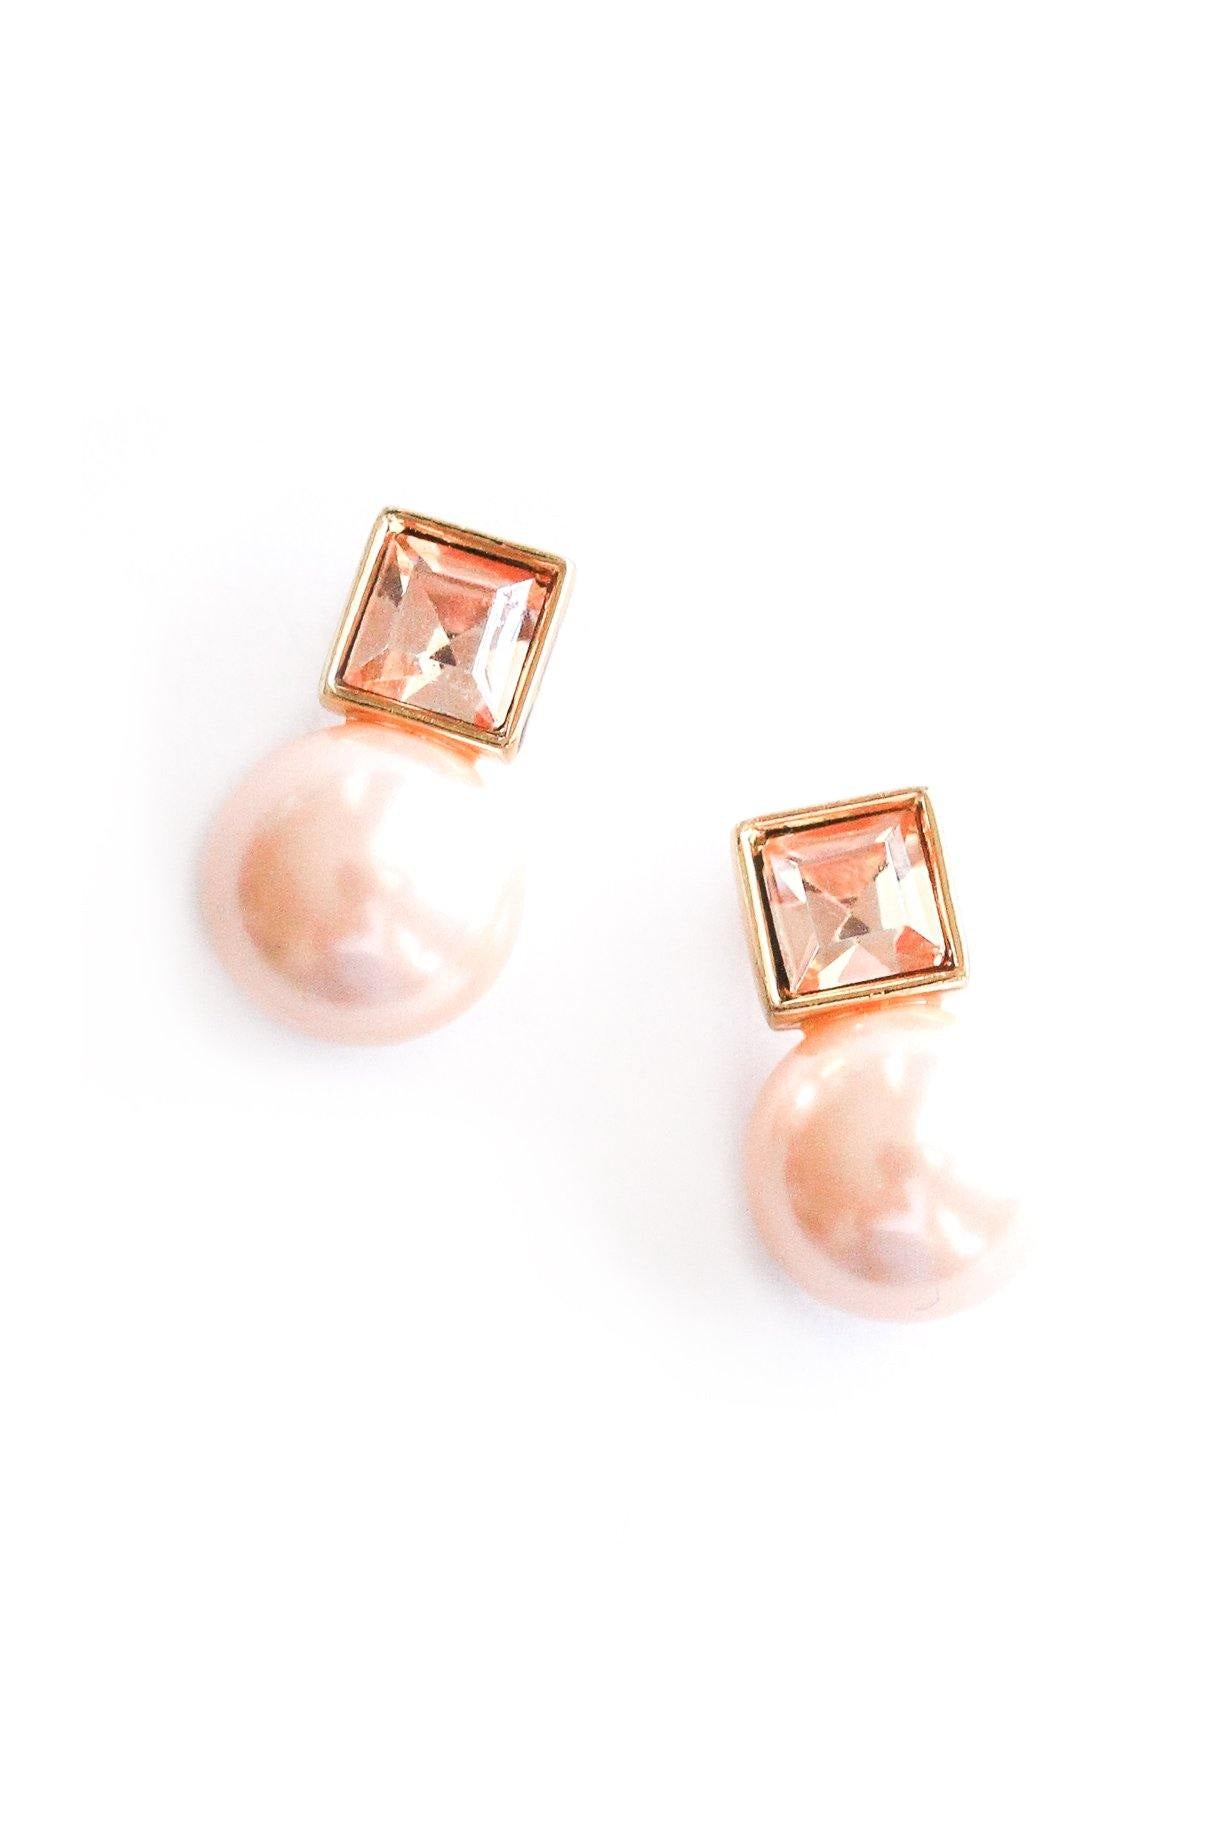 Pink pearl earrings from Sweet & Spark.